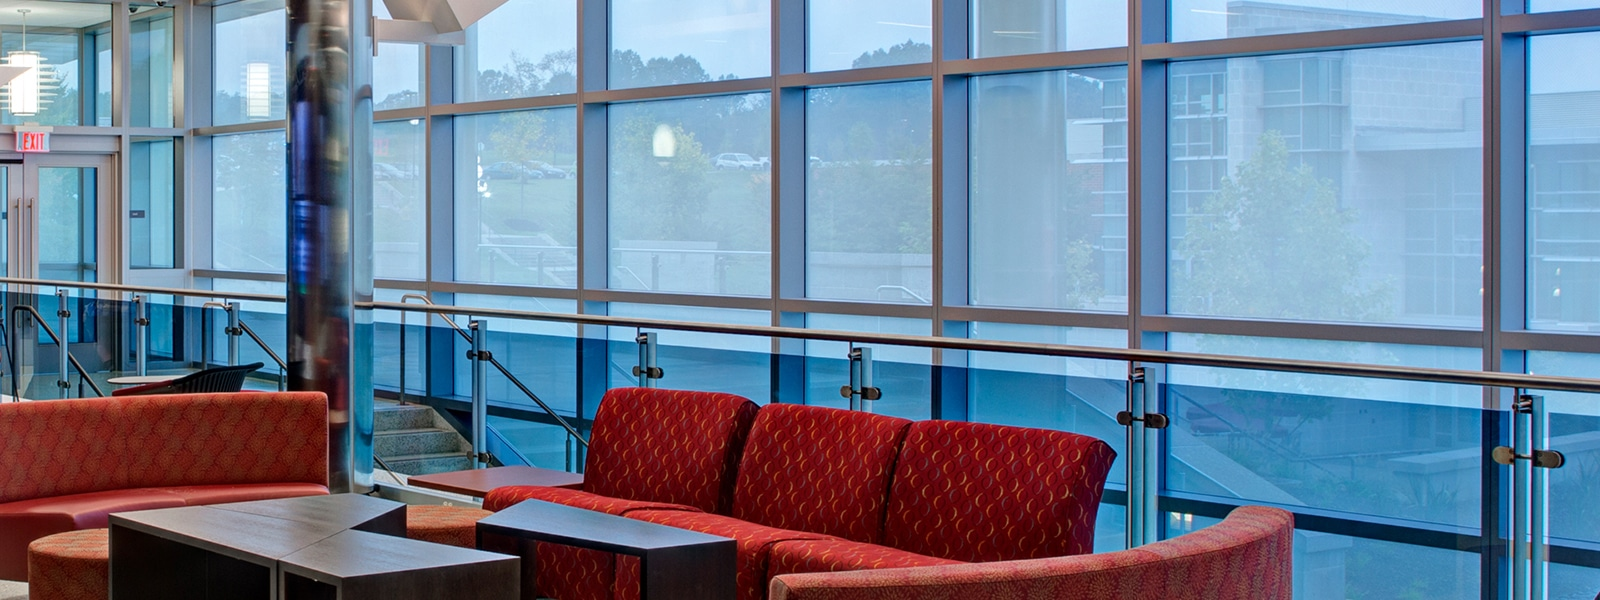 Commercial Window Film Office in South Carolina